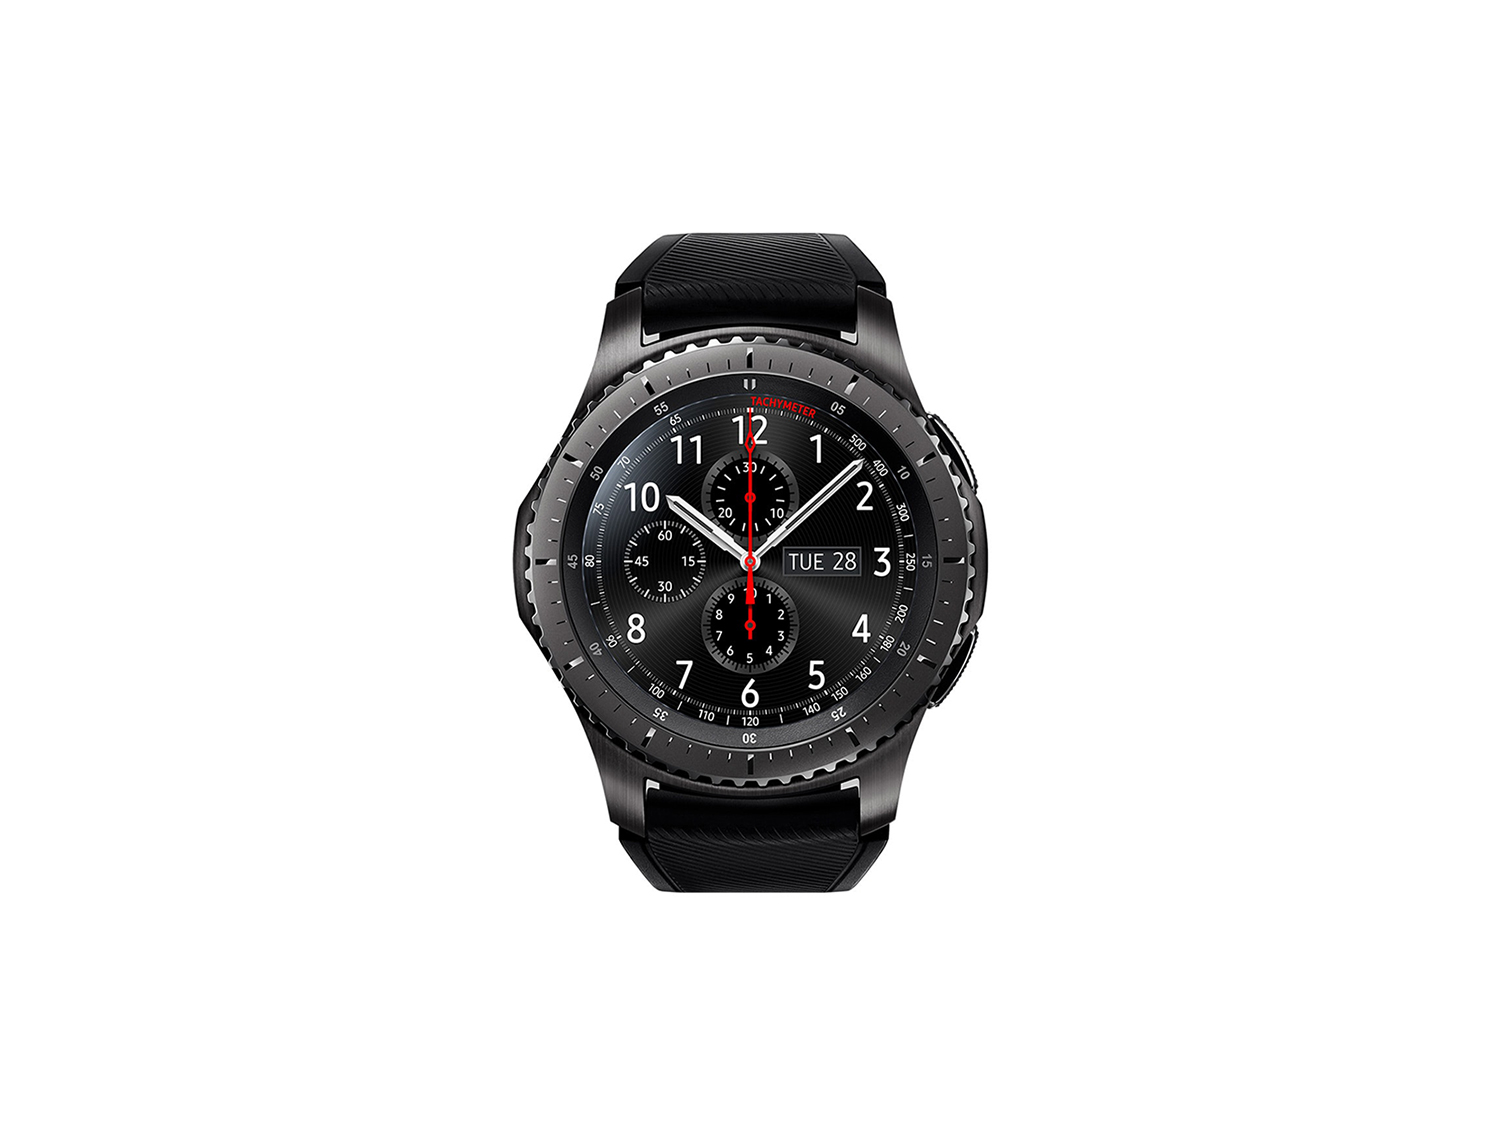 samsung galaxy gear s3 frontier. Black Bedroom Furniture Sets. Home Design Ideas